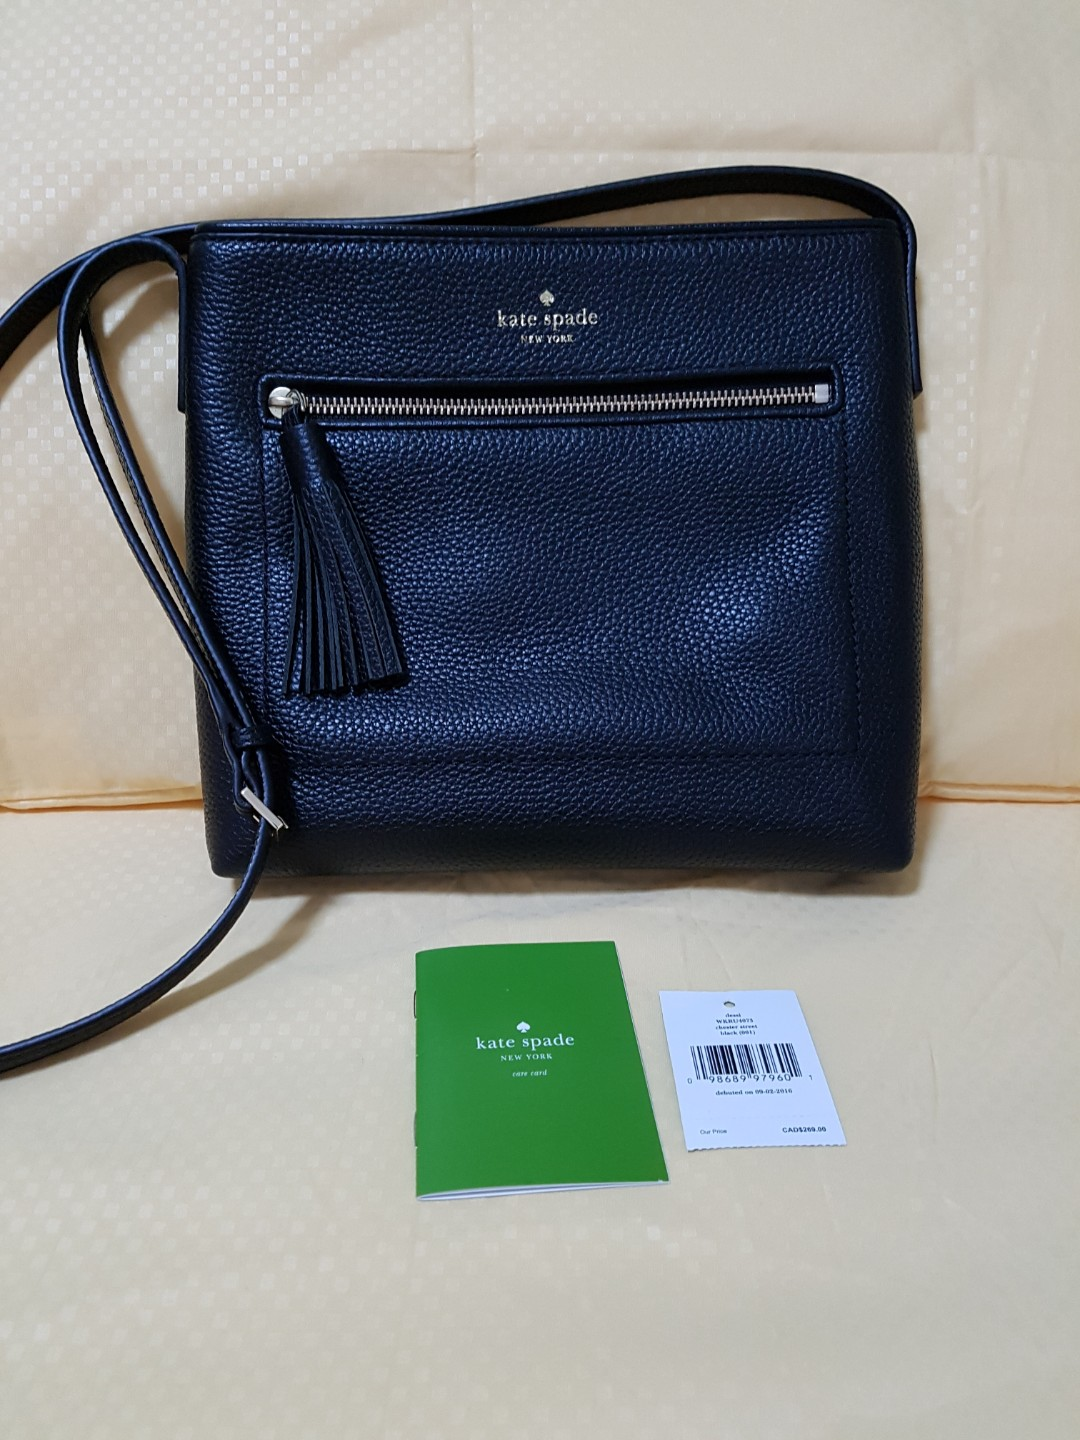 8d495ed42136 Kate Spade, Women's Fashion, Bags & Wallets, Sling Bags on Carousell